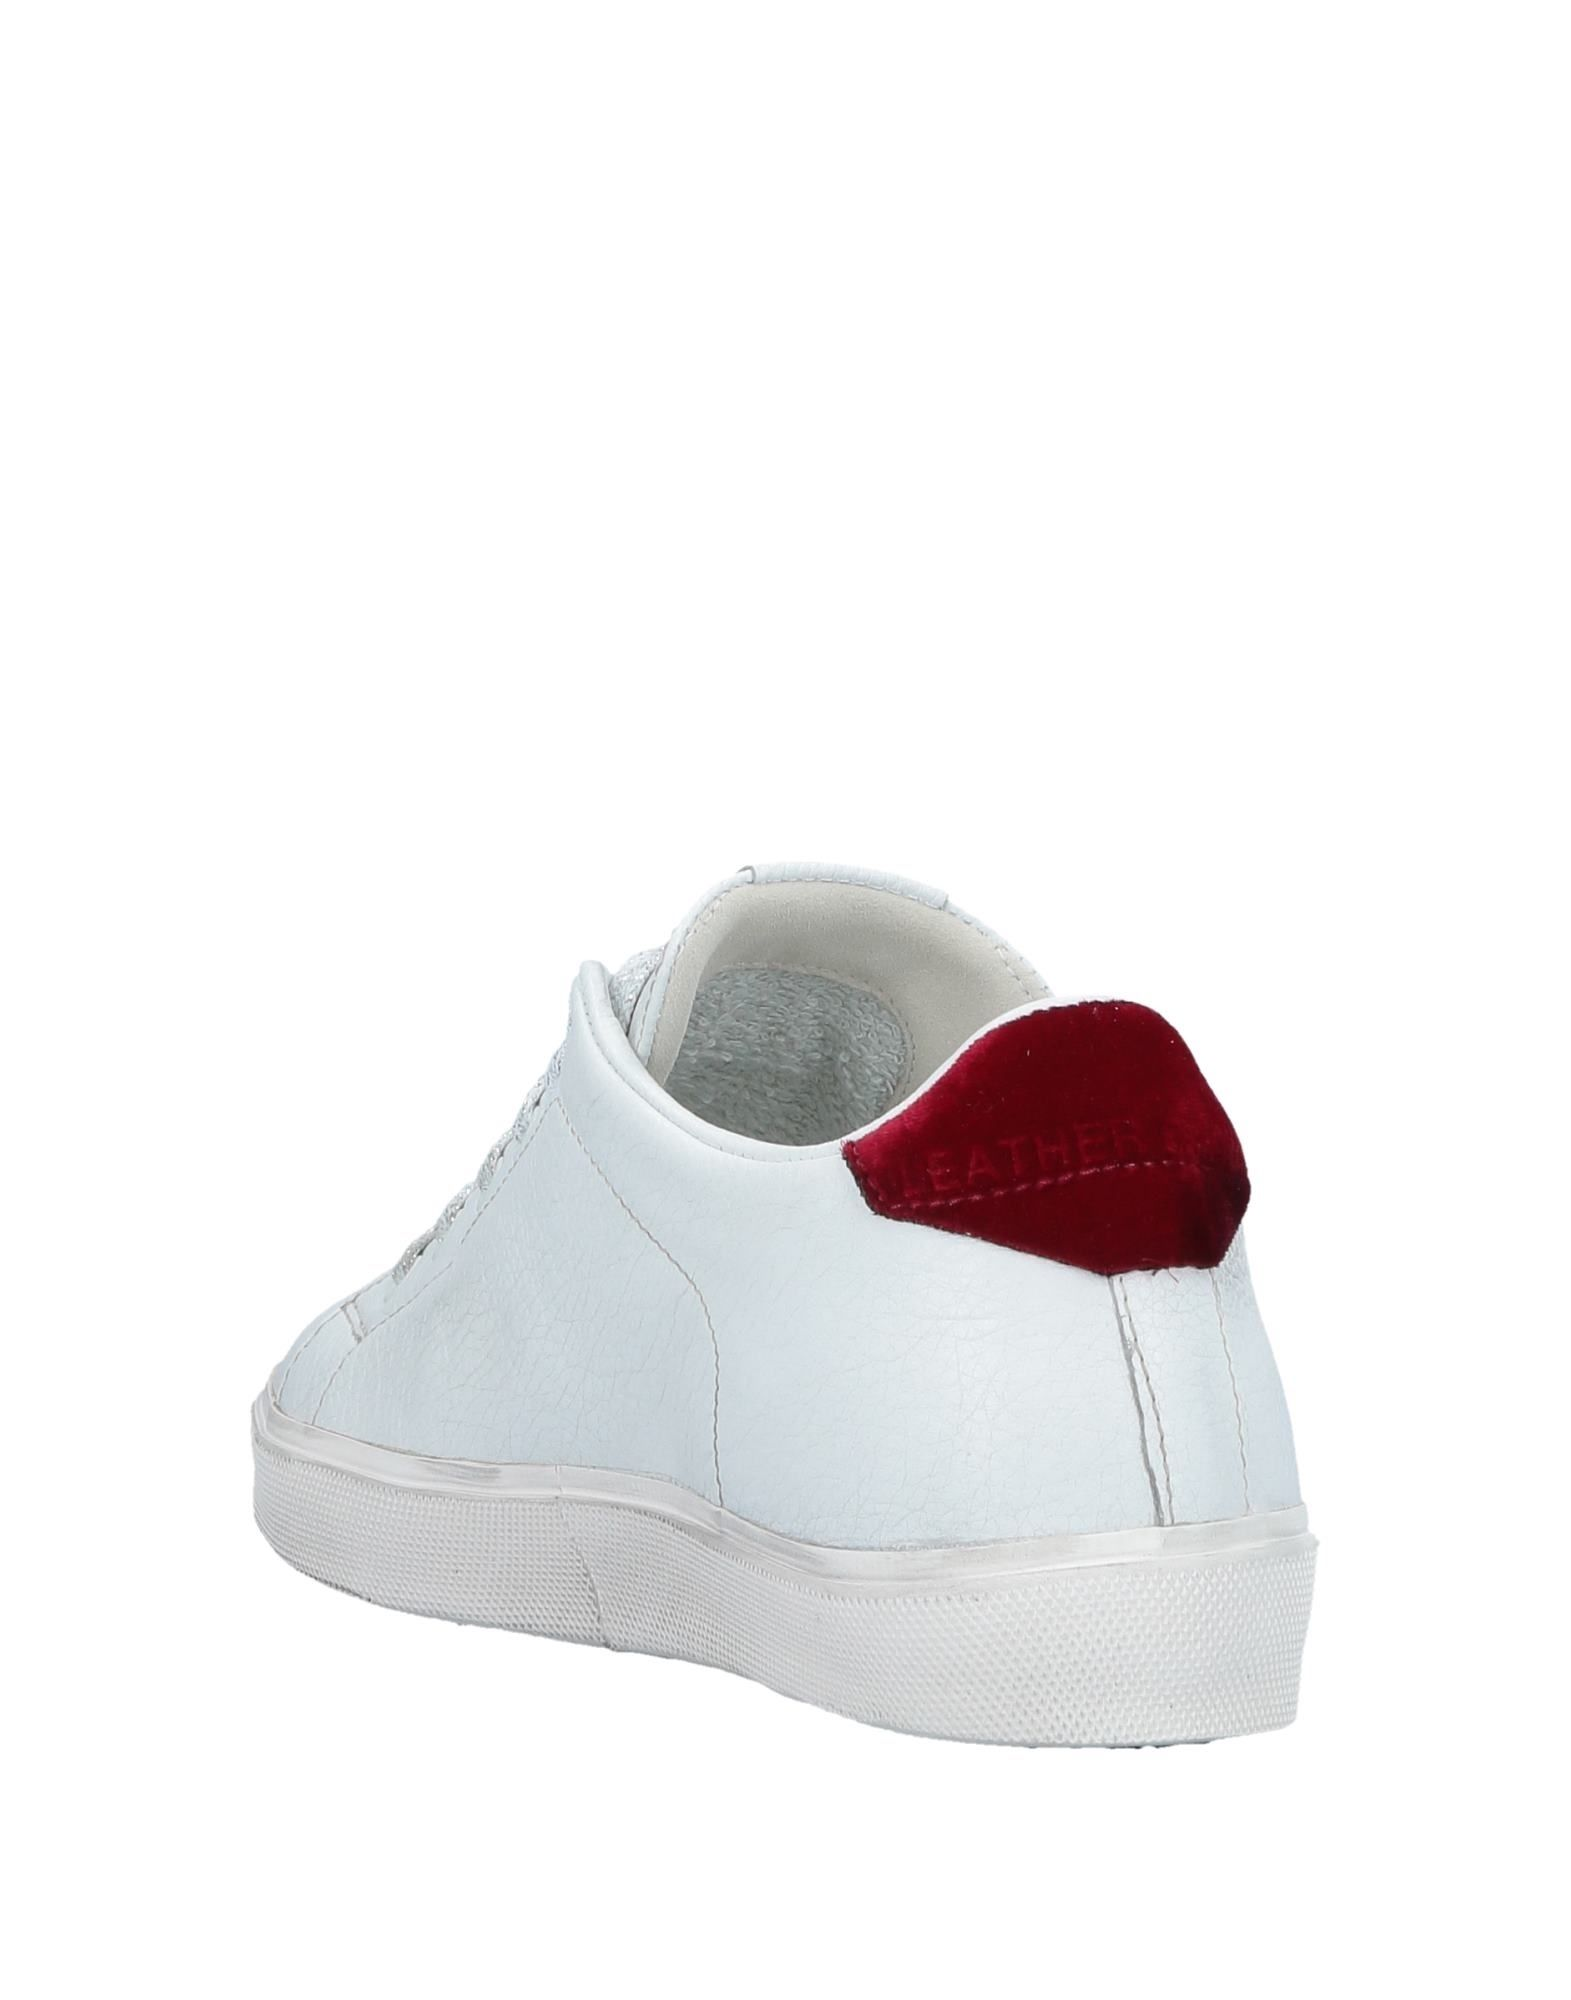 Leather 11531853MS Crown Sneakers Damen  11531853MS Leather 8c45f6